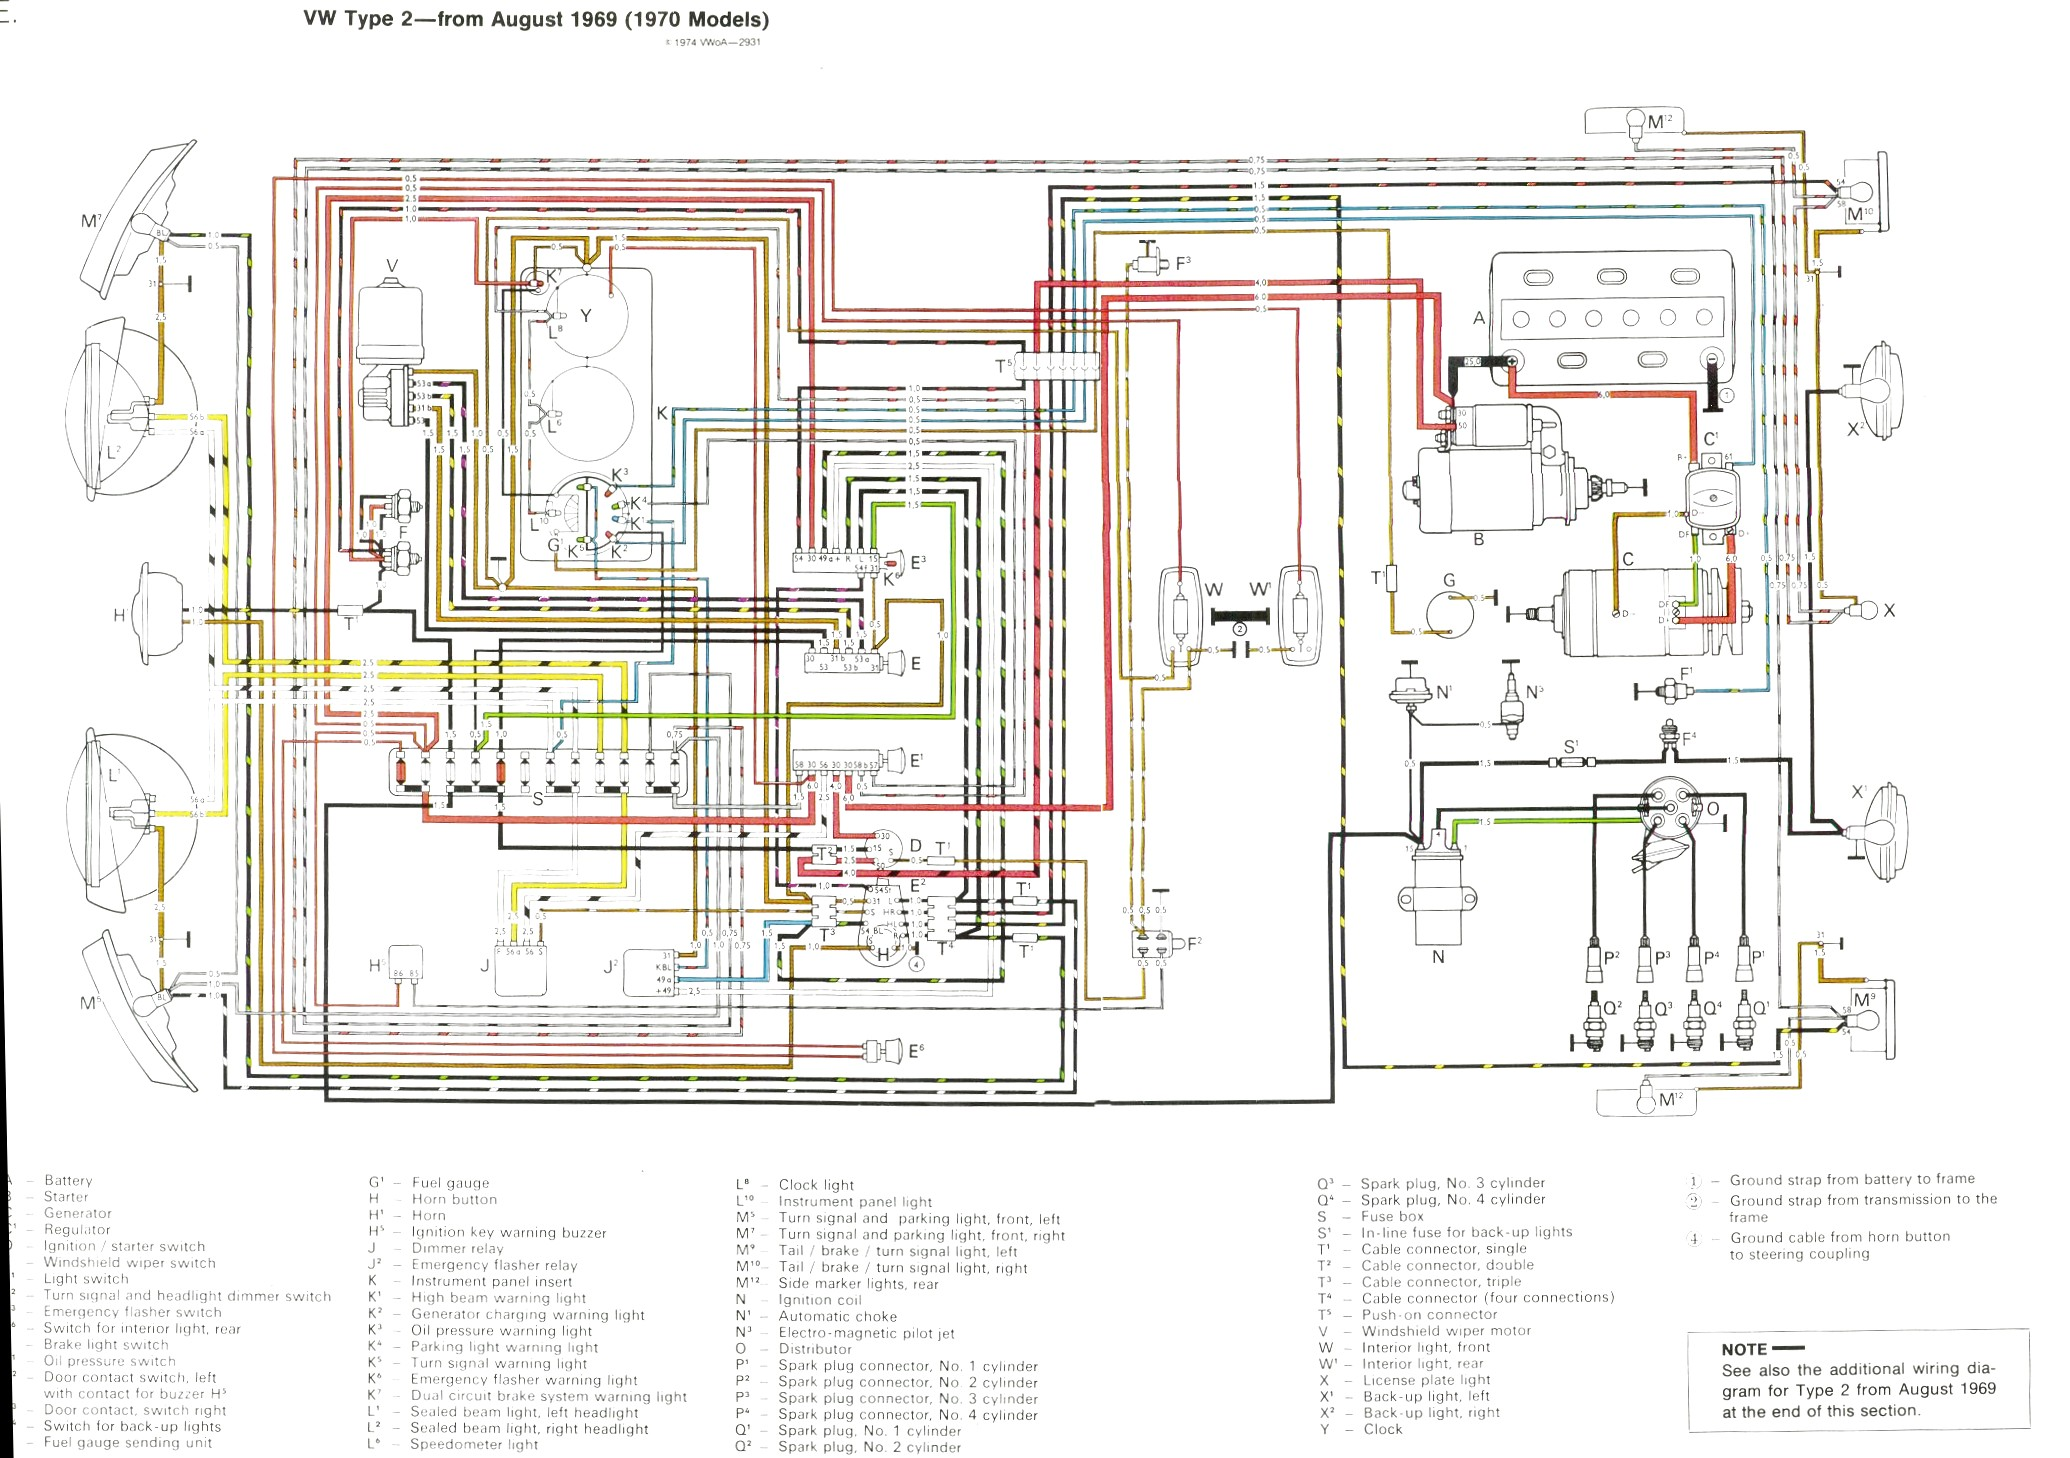 bus 69 70 baywindow fusebox layout 1971 vw bus wiring diagram at crackthecode.co